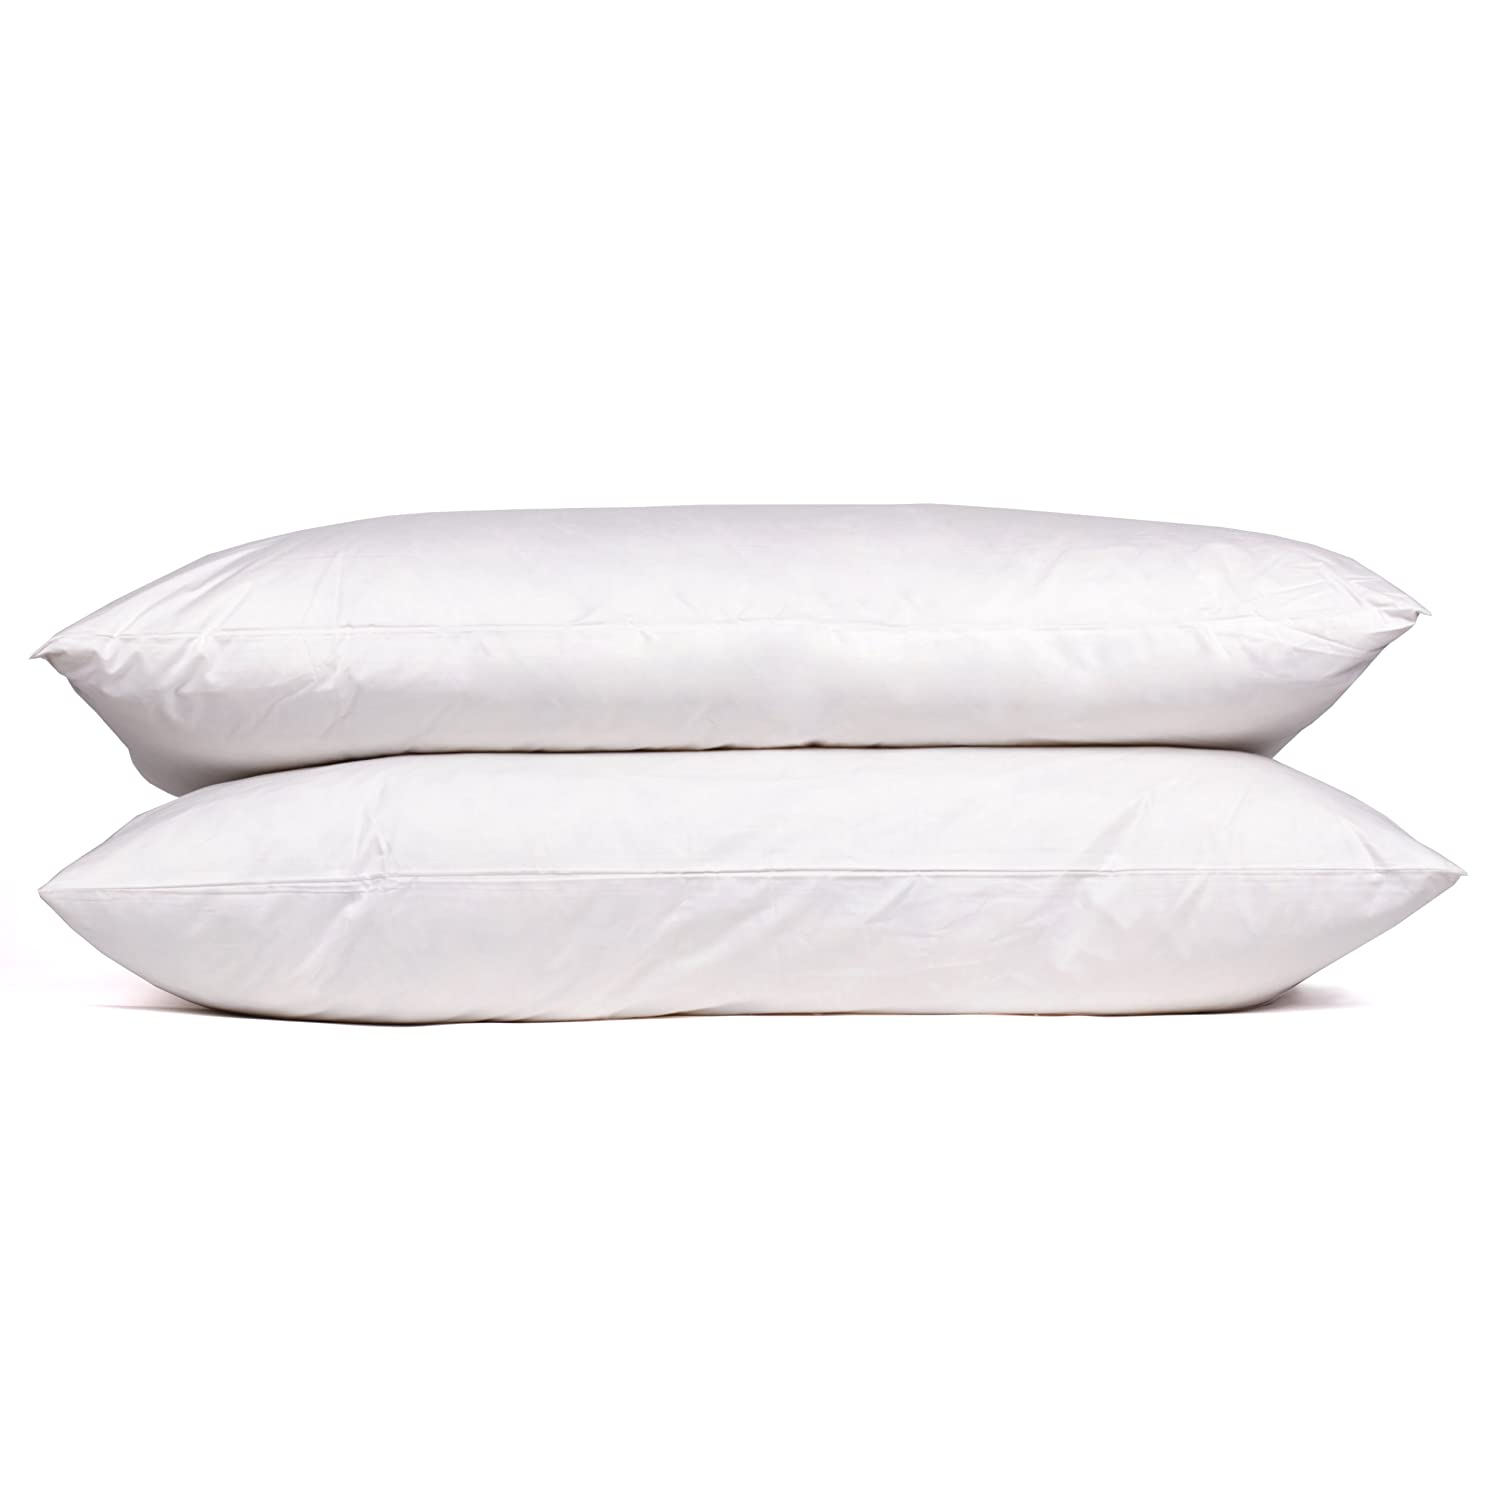 Sweet Home Collection Goose Down and Feather 400 Thread Count Premium Bed Pillow, King